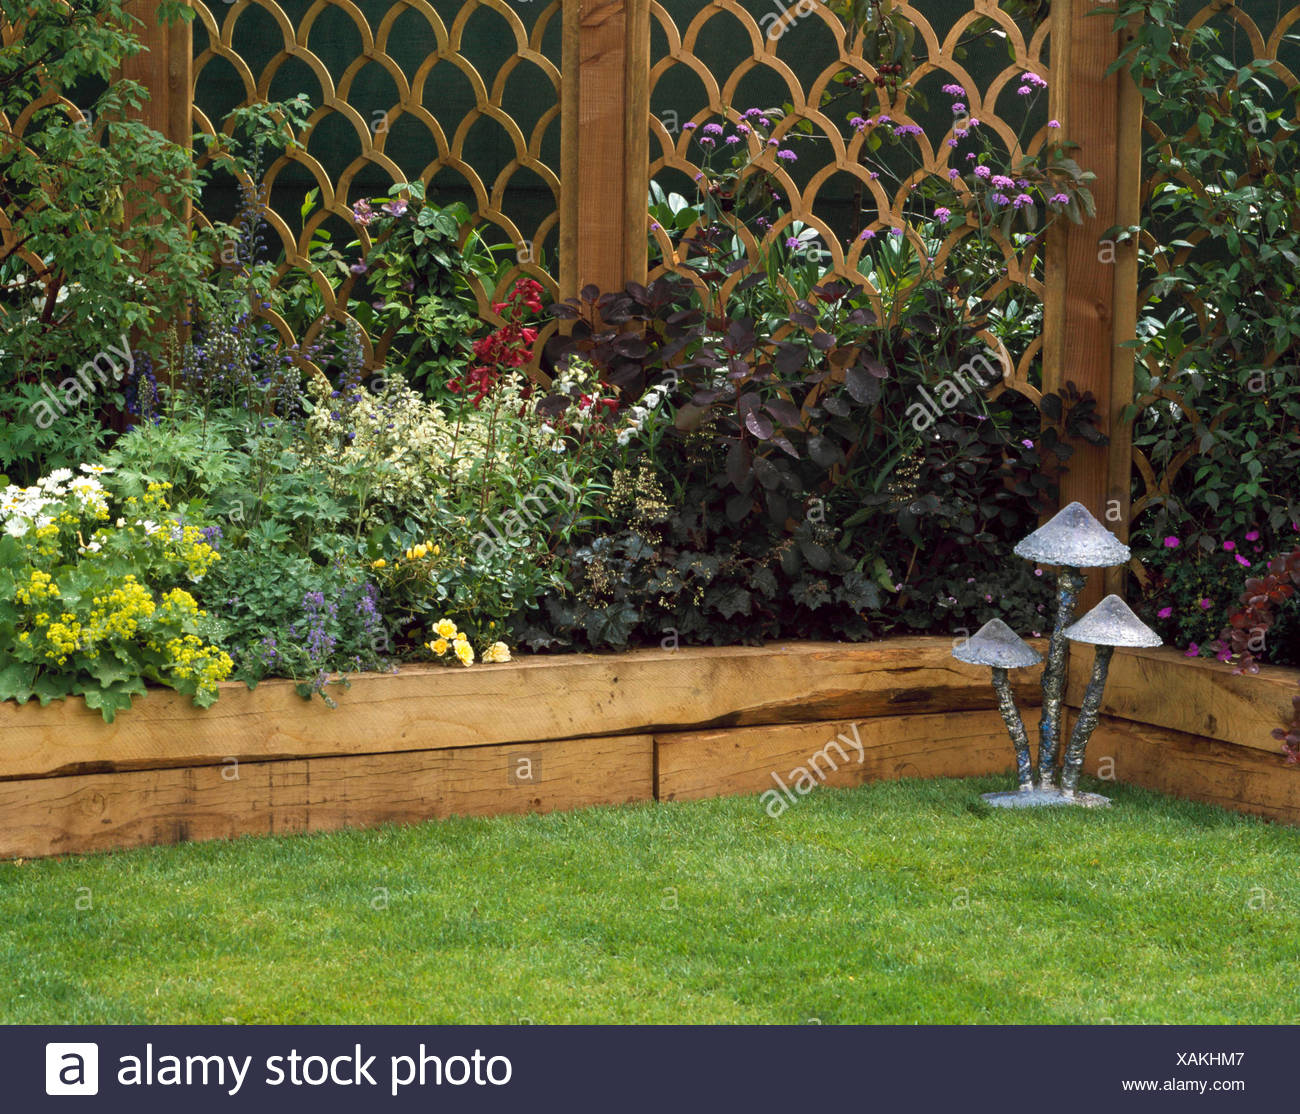 Raised Bed - backed with ornamental fence - (Please credit ... on raised garden deer fence, raised garden planner, raised garden decks, raised gardens designs, raised garden irrigation plans, raised garden benches, raised garden roofing, raised garden bins, raised garden water systems, raised garden edging, raised garden concrete, raised garden boards, raised garden timbers, raised garden planting, raised garden drainage, raised garden building, raised garden dog fence, raised garden kits, raised garden gates,